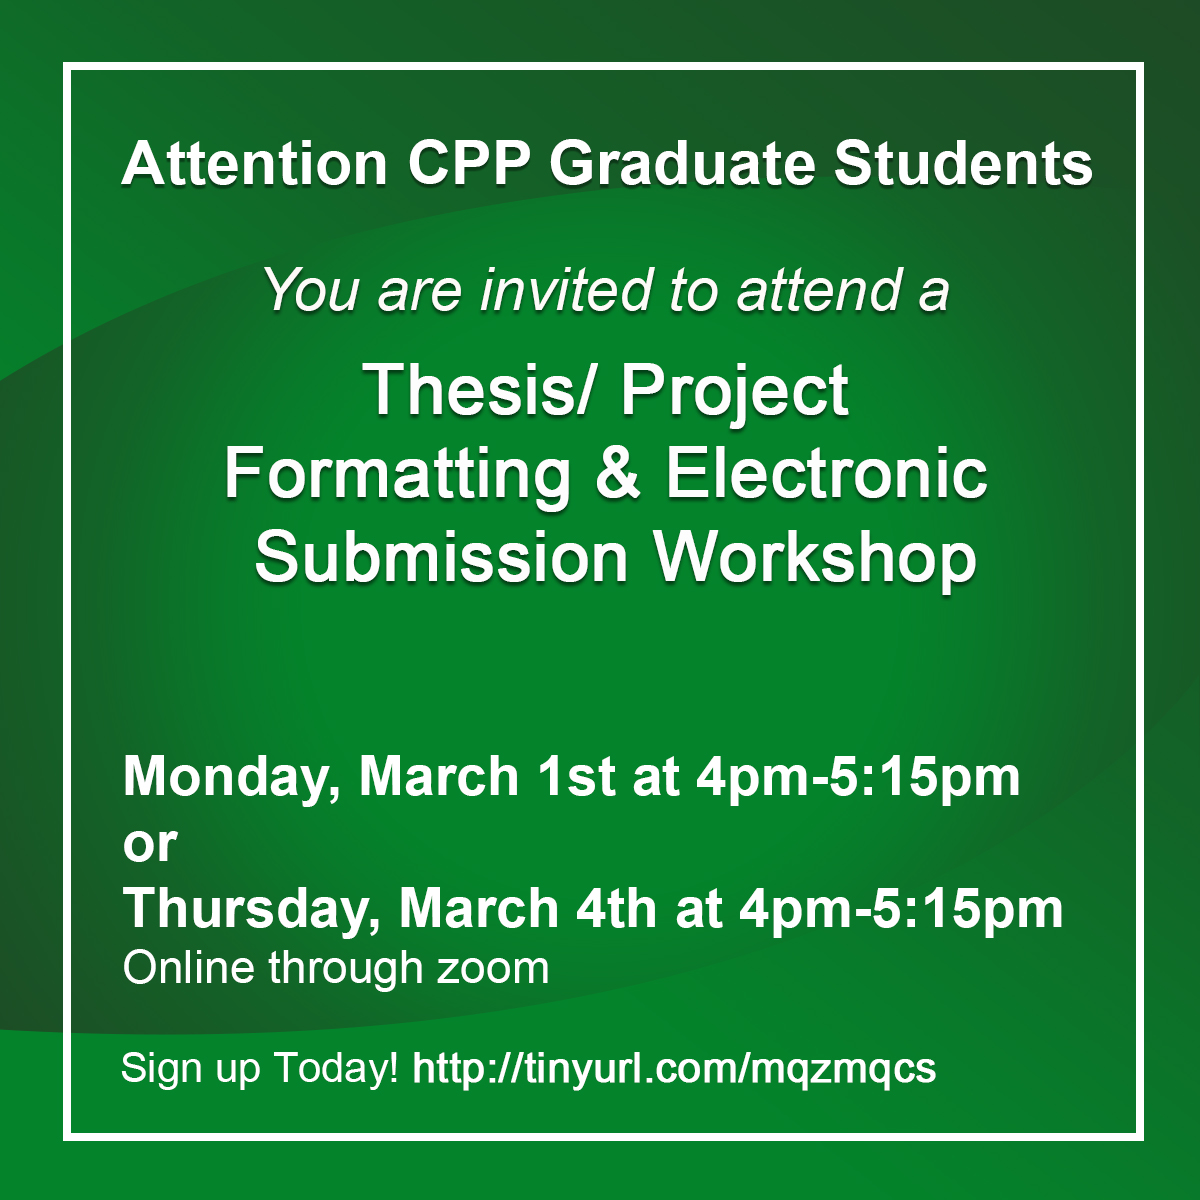 Master's Thesis/Project Formatting and submissions Workshop